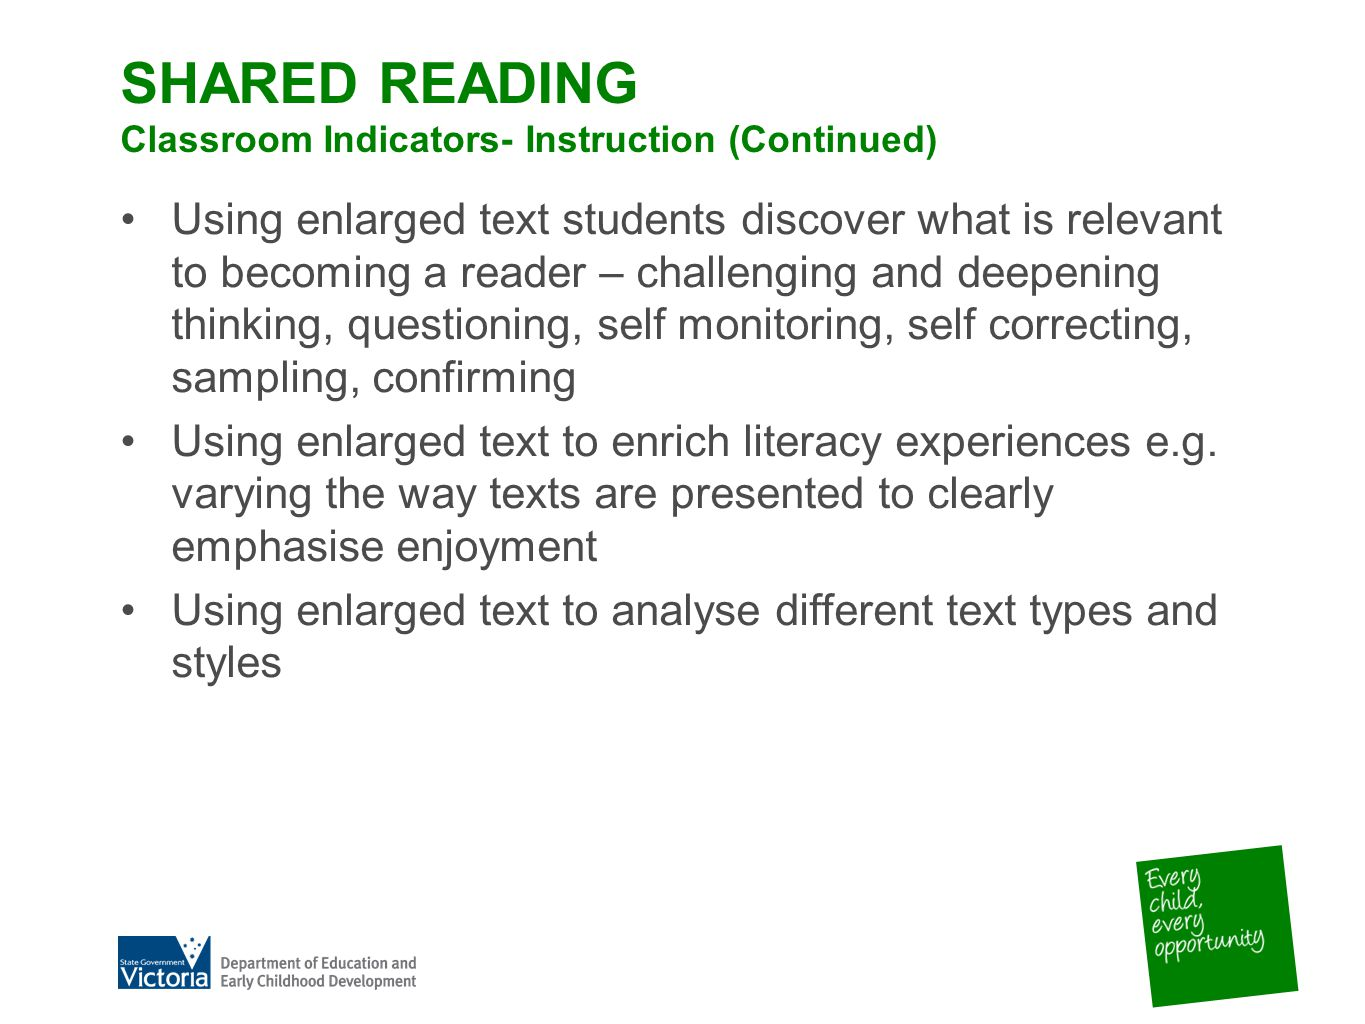 SHARED READING Classroom Indicators- Instruction (Continued) Using enlarged text students discover what is relevant to becoming a reader – challenging and deepening thinking, questioning, self monitoring, self correcting, sampling, confirming Using enlarged text to enrich literacy experiences e.g.